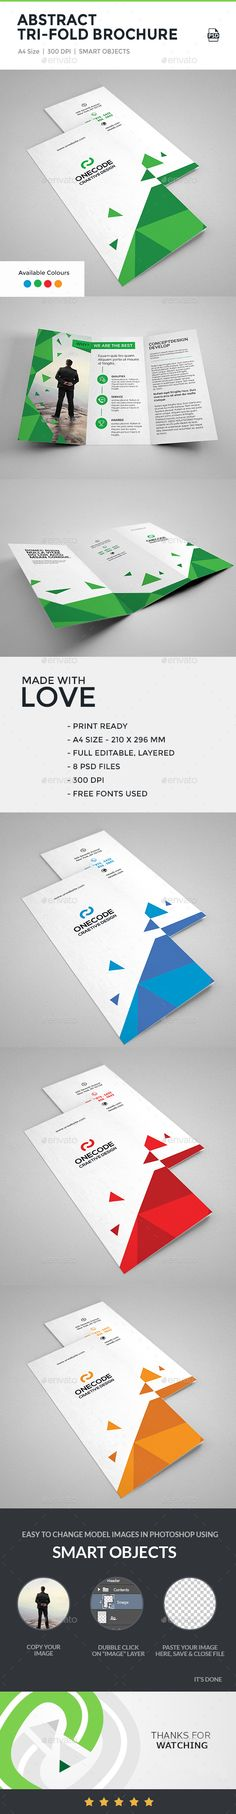 Abstract Tri-Fold Brochure Template PSD #design Download: http://graphicriver.net/item/abstract-trifold-brochure/14396631?ref=ksioks